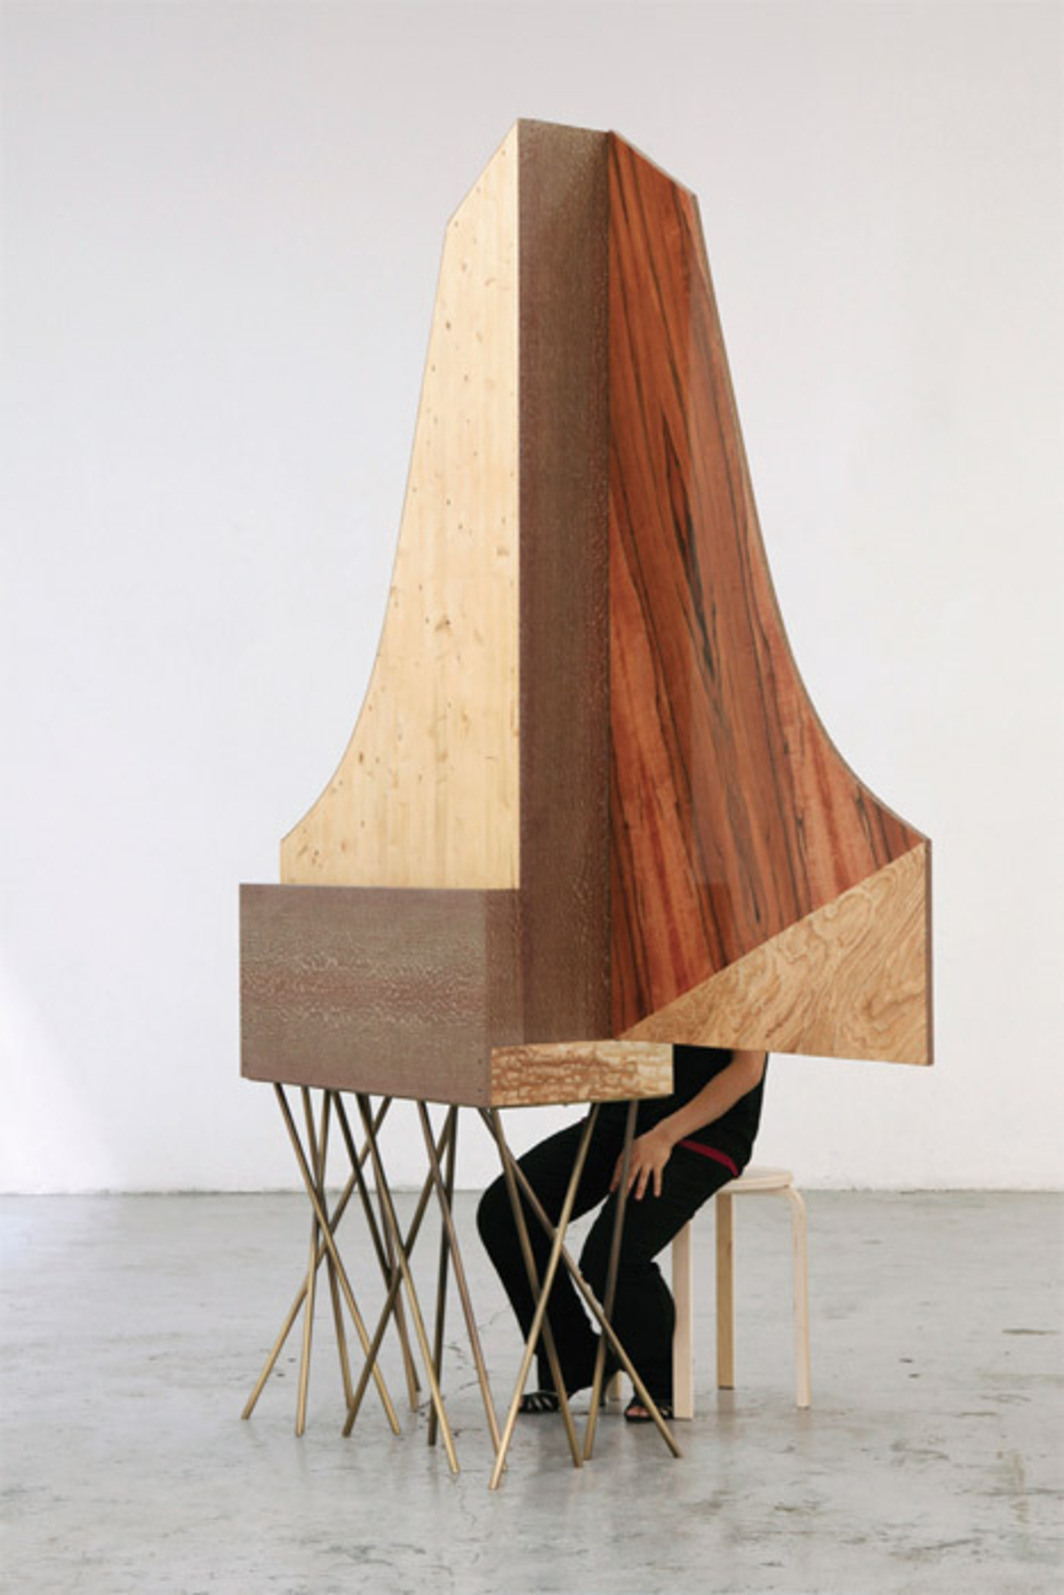 "Riccardo Beretta, Donnerwetter, 2011–12, natural dyed veneers, wood, brass, 93 1/4 x 63 x 16 1/8"". Performance view."